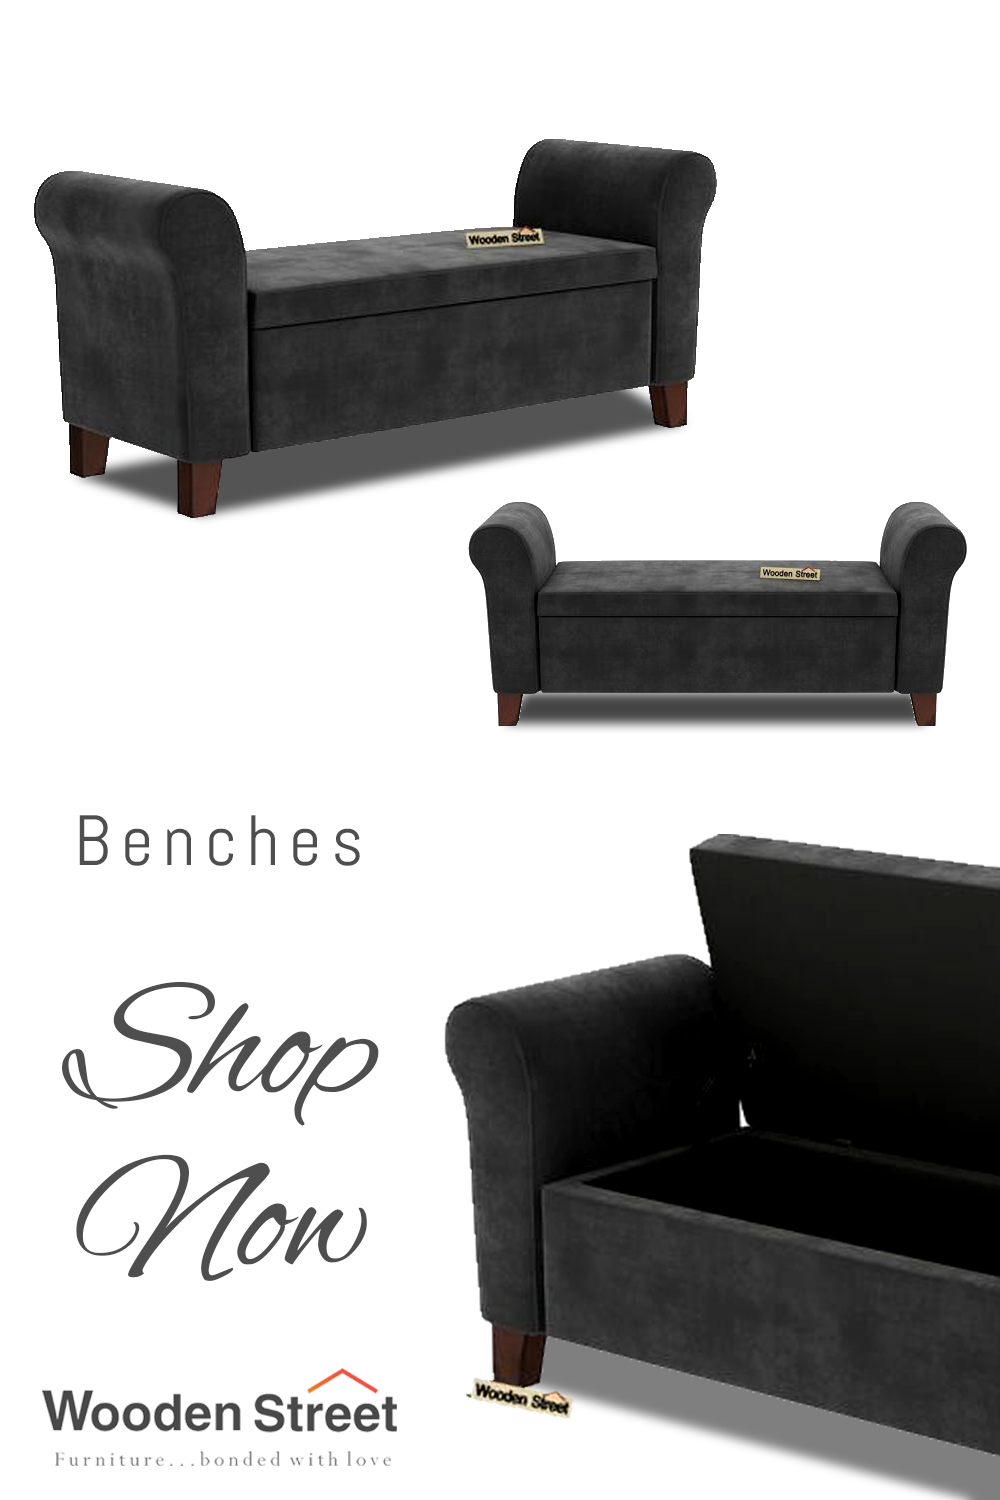 Buy Jade Bench With Storage Graphite Grey Online In India Wooden Street Wooden Street Bench Online Bench With Storage